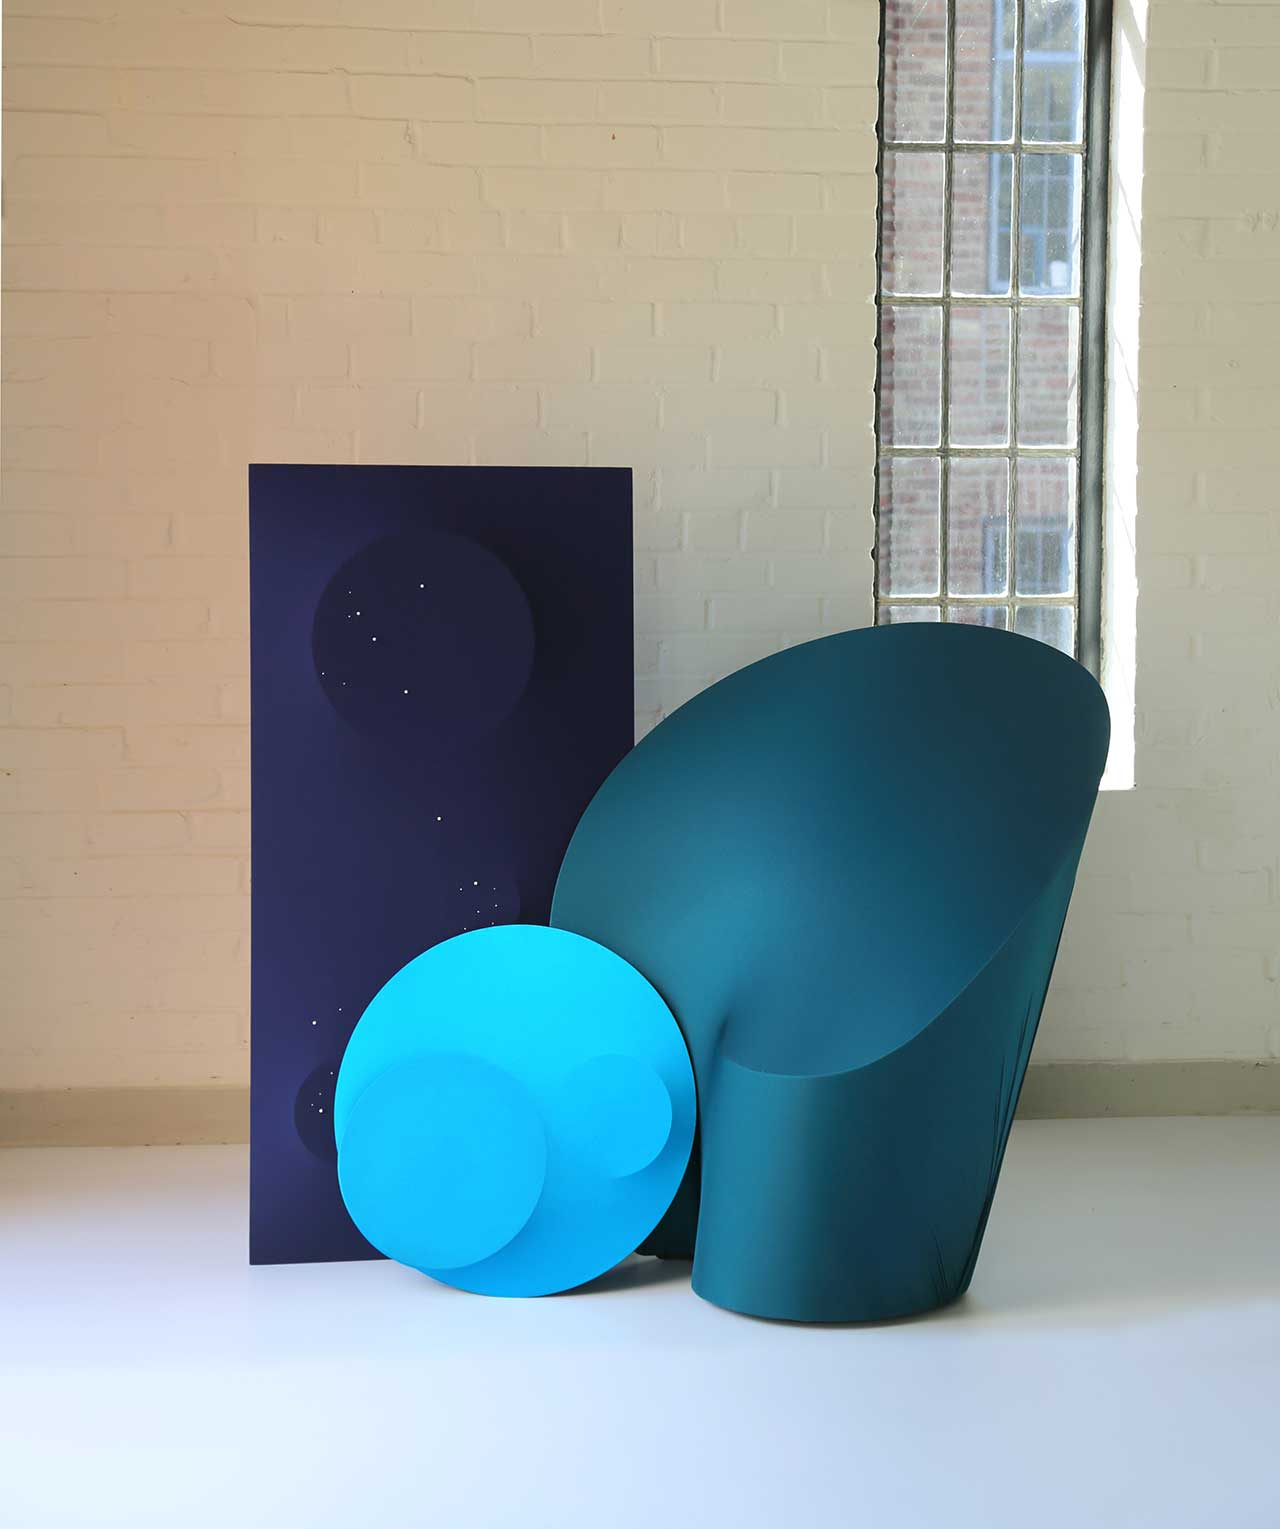 WantedDesign 2019 Launch Pad Furniture Winner: Seonhee Sunny Kim